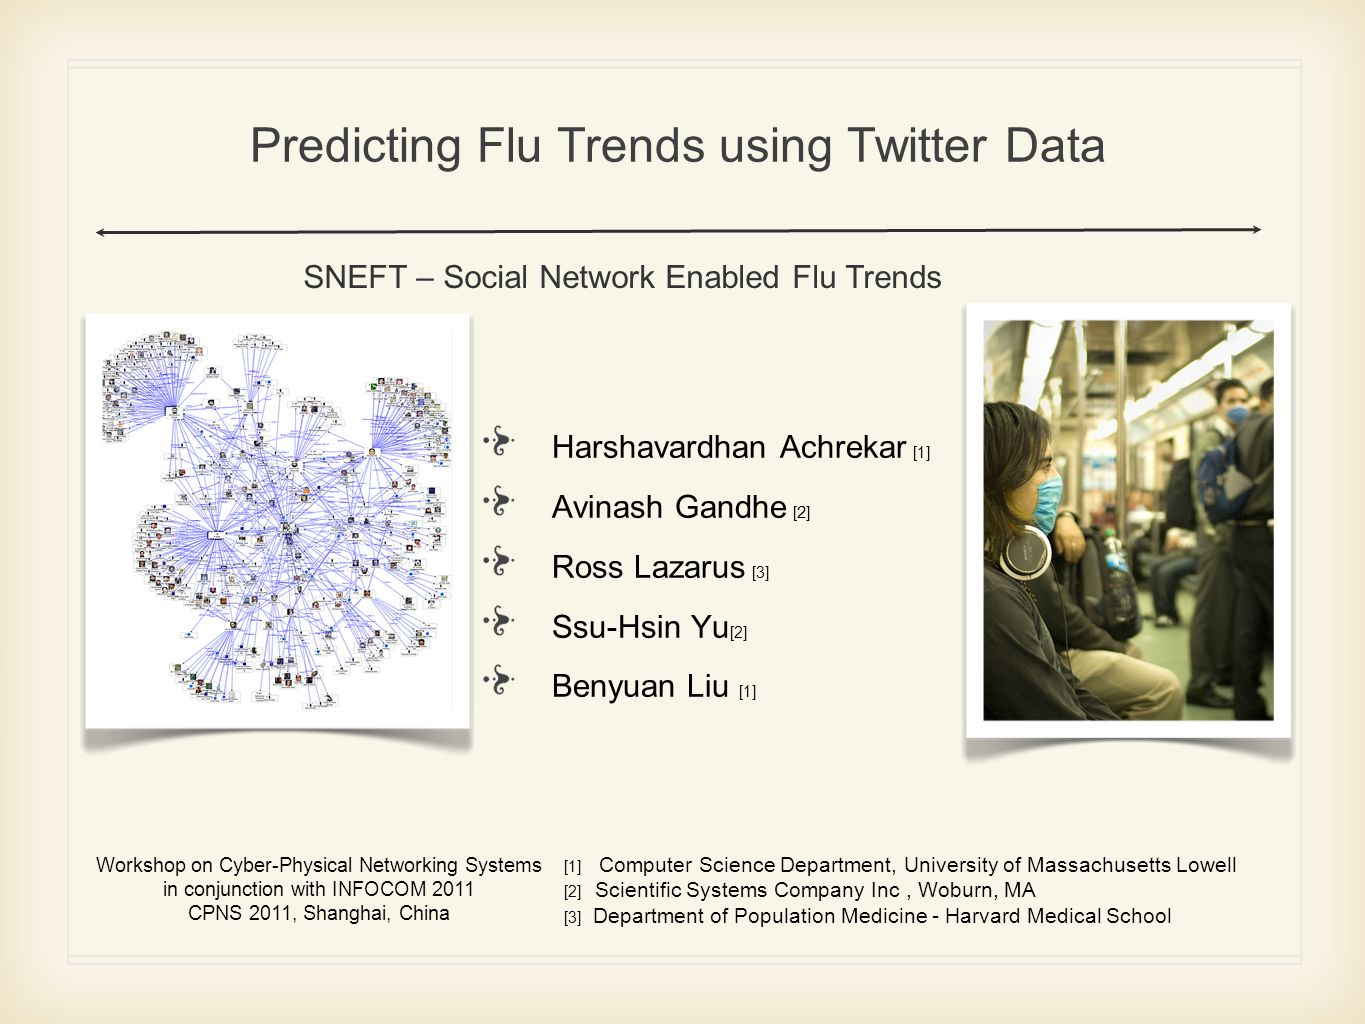 Predicting Flu Trends using Twitter Data Harshavardhan Achrekar [1] Avinash Gandhe [ 2 ] Ross Lazarus [3] Ssu-Hsin Yu [2] Benyuan Liu [1] Workshop on Cyber-Physical Networking Systems in conjunction with INFOCOM 2011 CPNS 2011, Shanghai, China SNEFT – Social Network Enabled Flu Trends [1] Computer Science Department, University of Massachusetts Lowell [2] Scientific Systems Company Inc, Woburn, MA [3] Department of Population Medicine - Harvard Medical School